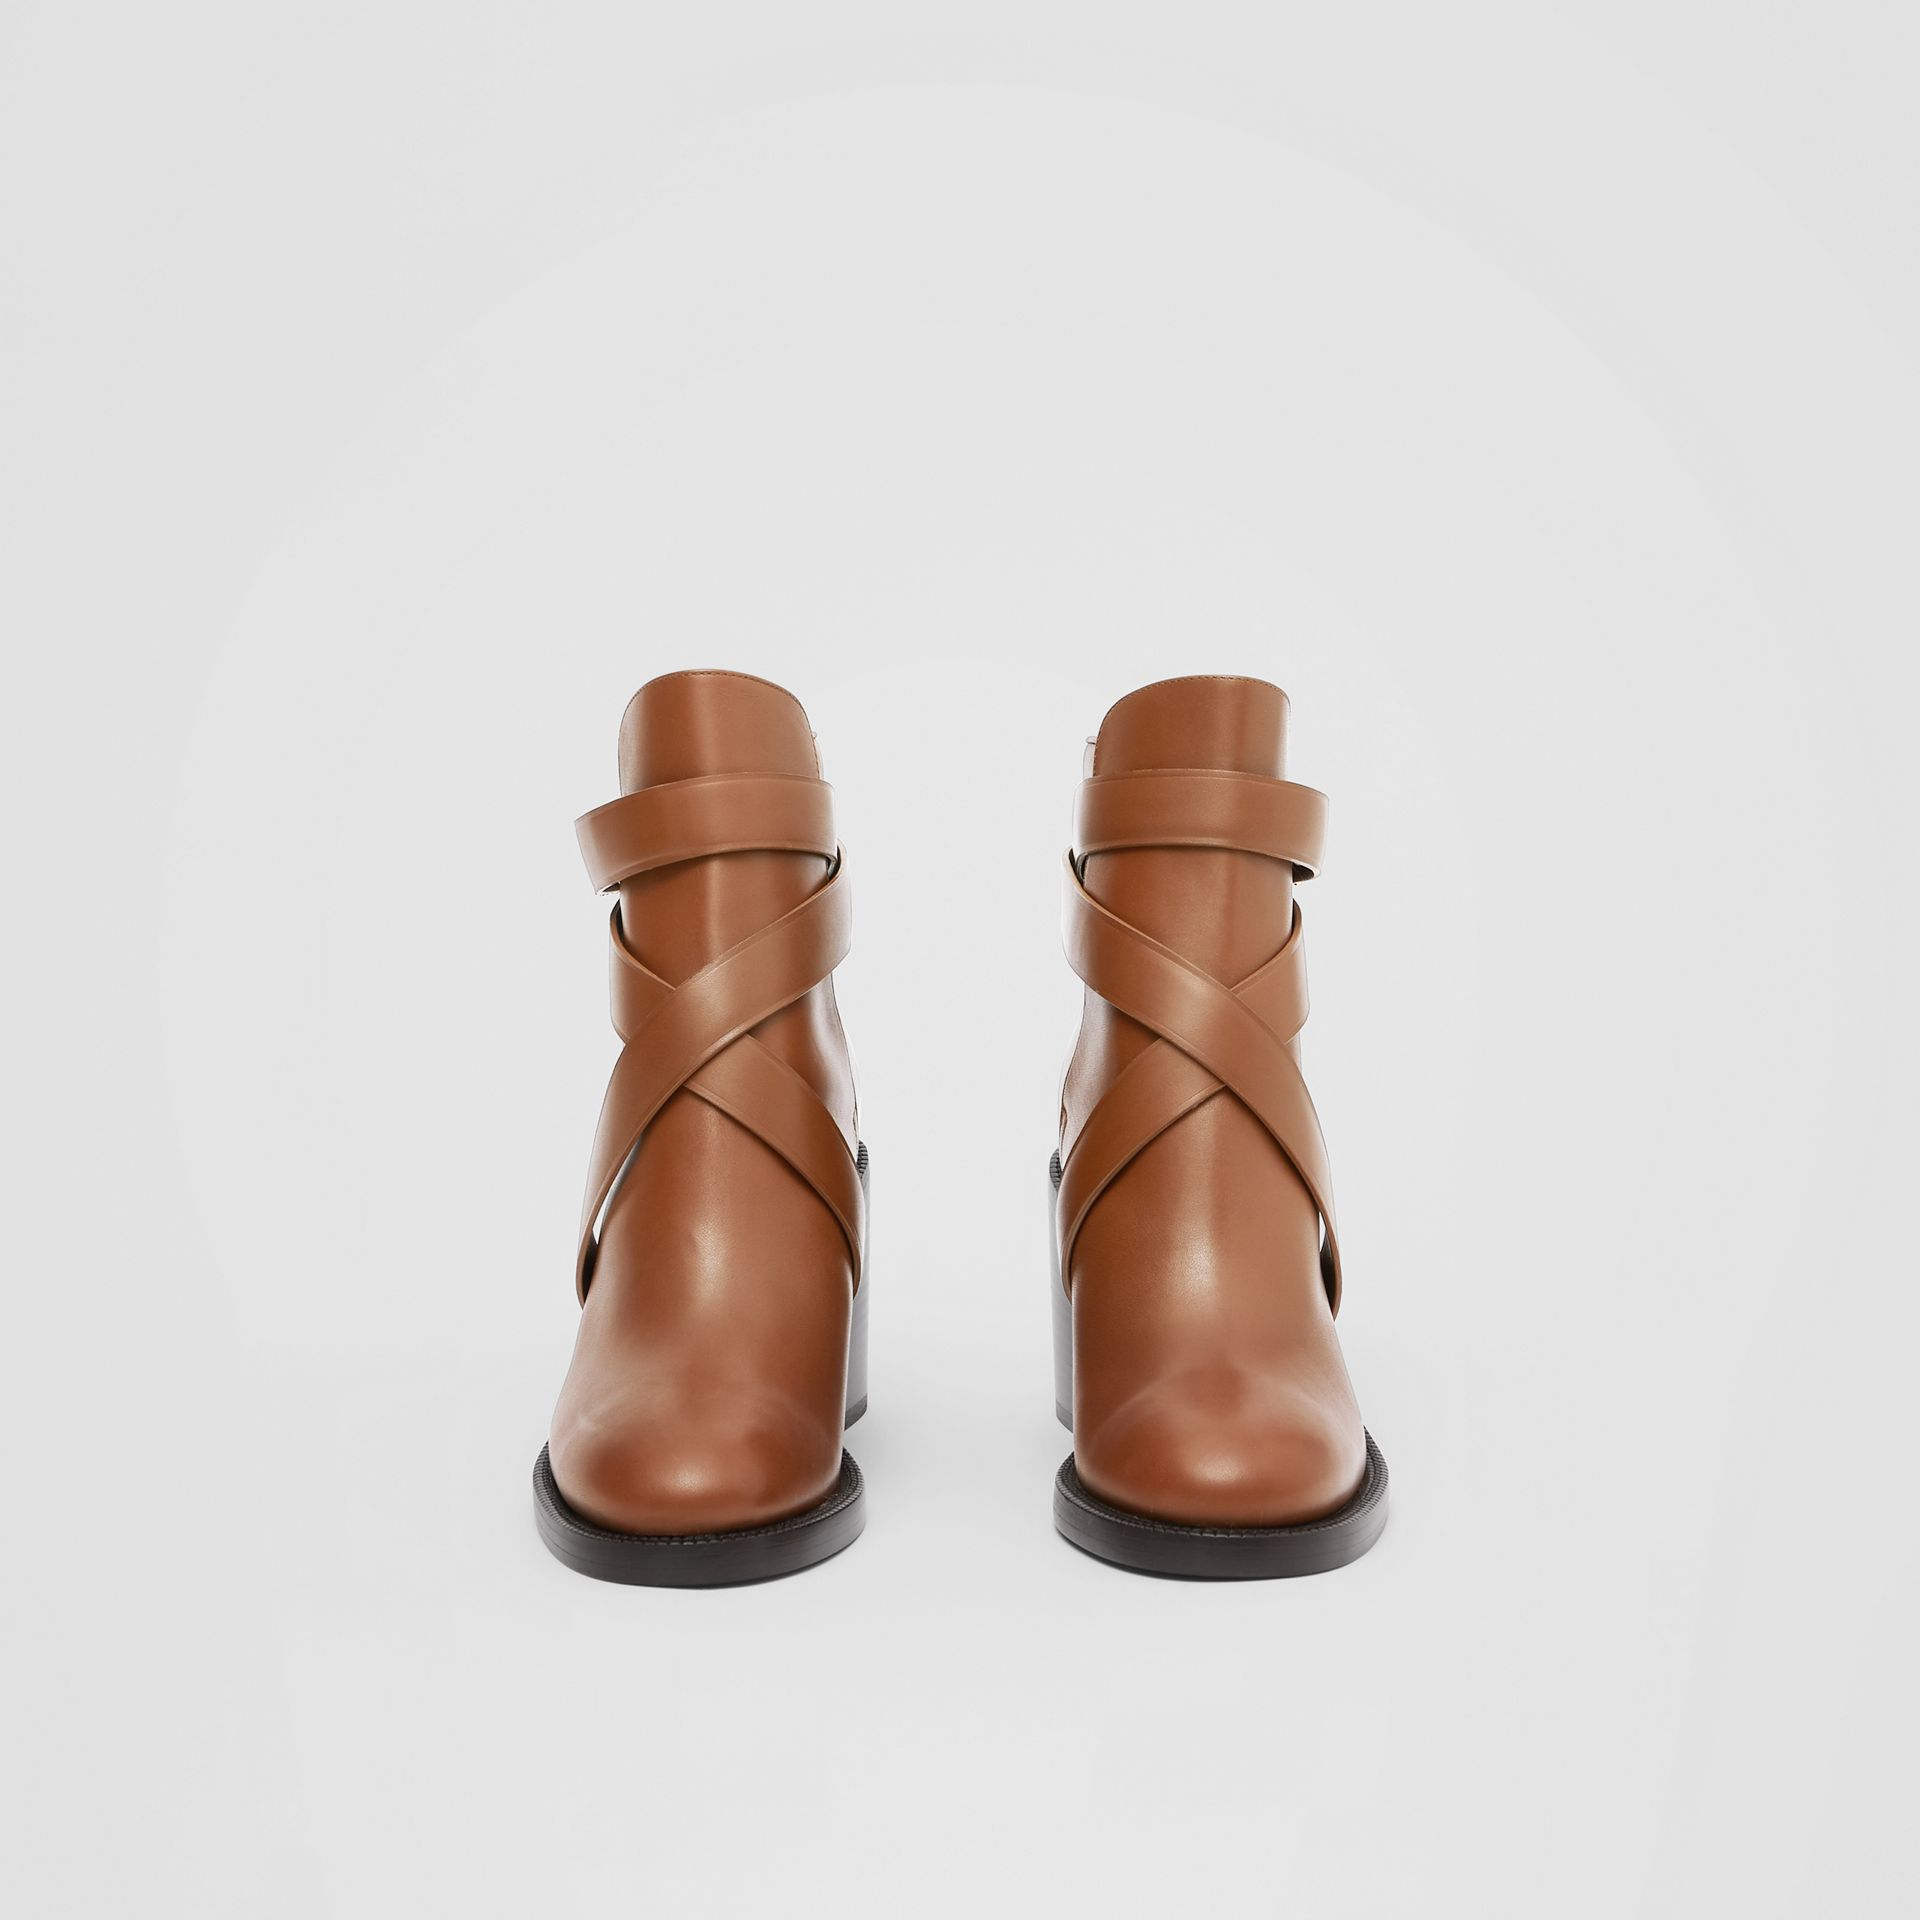 Bottines en cuir Monogram (Hâle) - Femme | Burberry - photo de la galerie 2